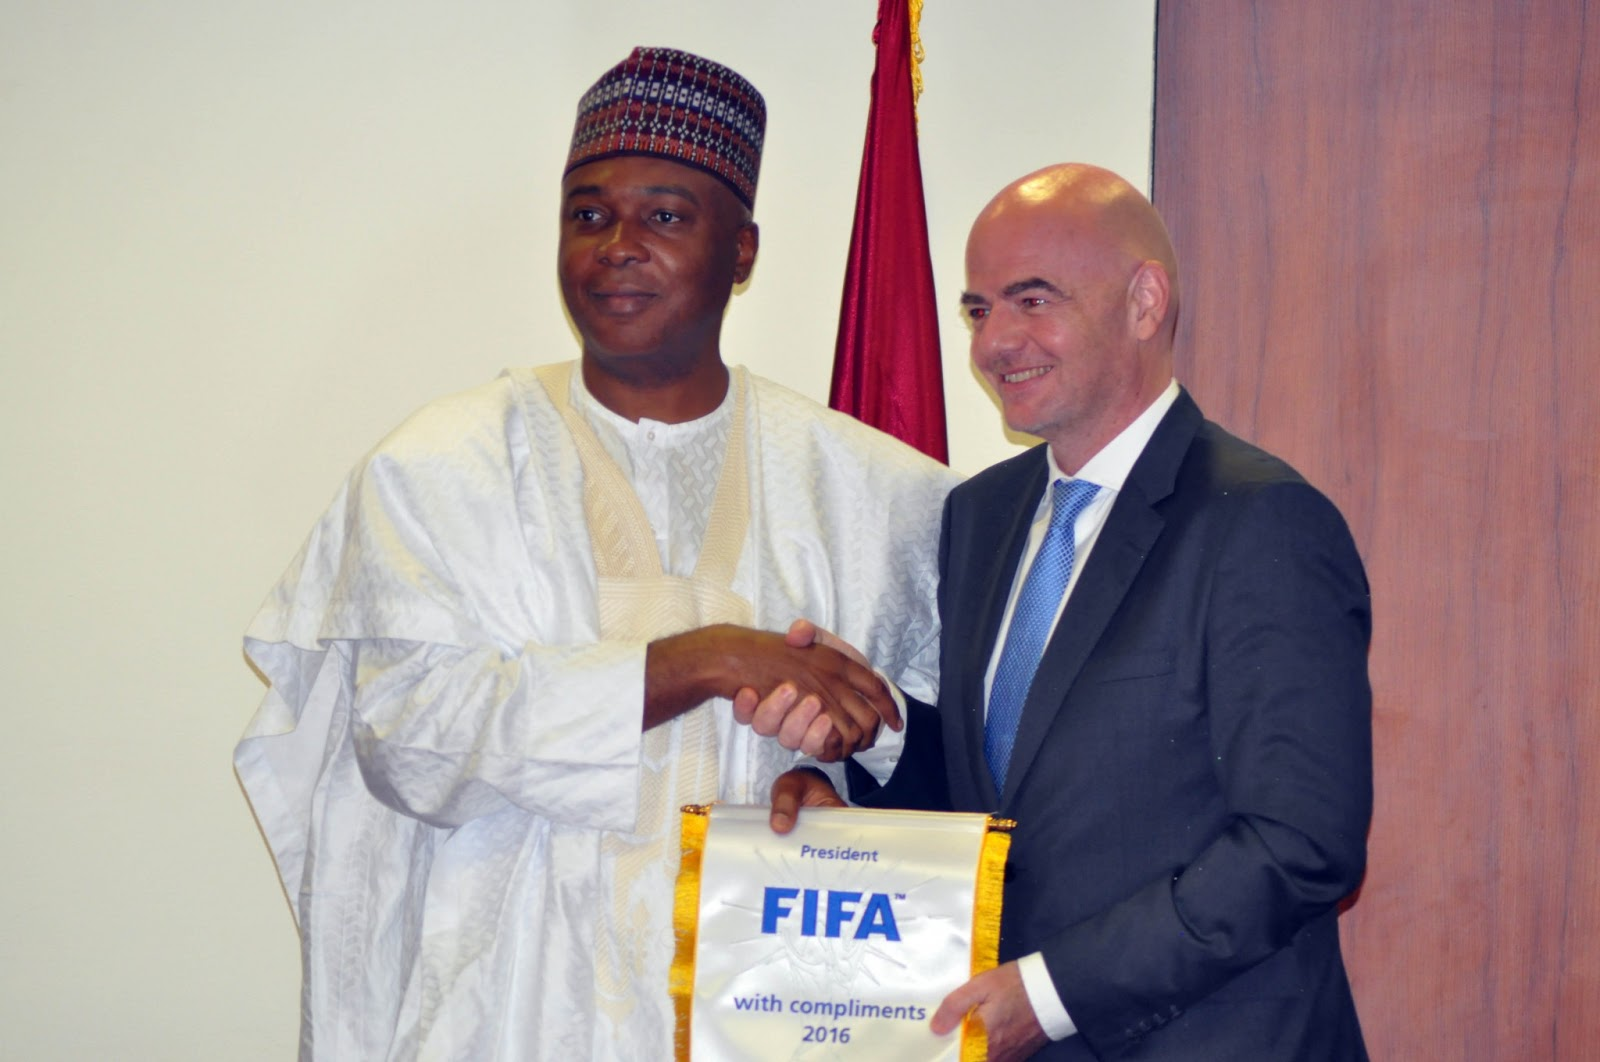 President of Senate, Speaker of House of Reps congratulates NFF President, Amaju Pinnick